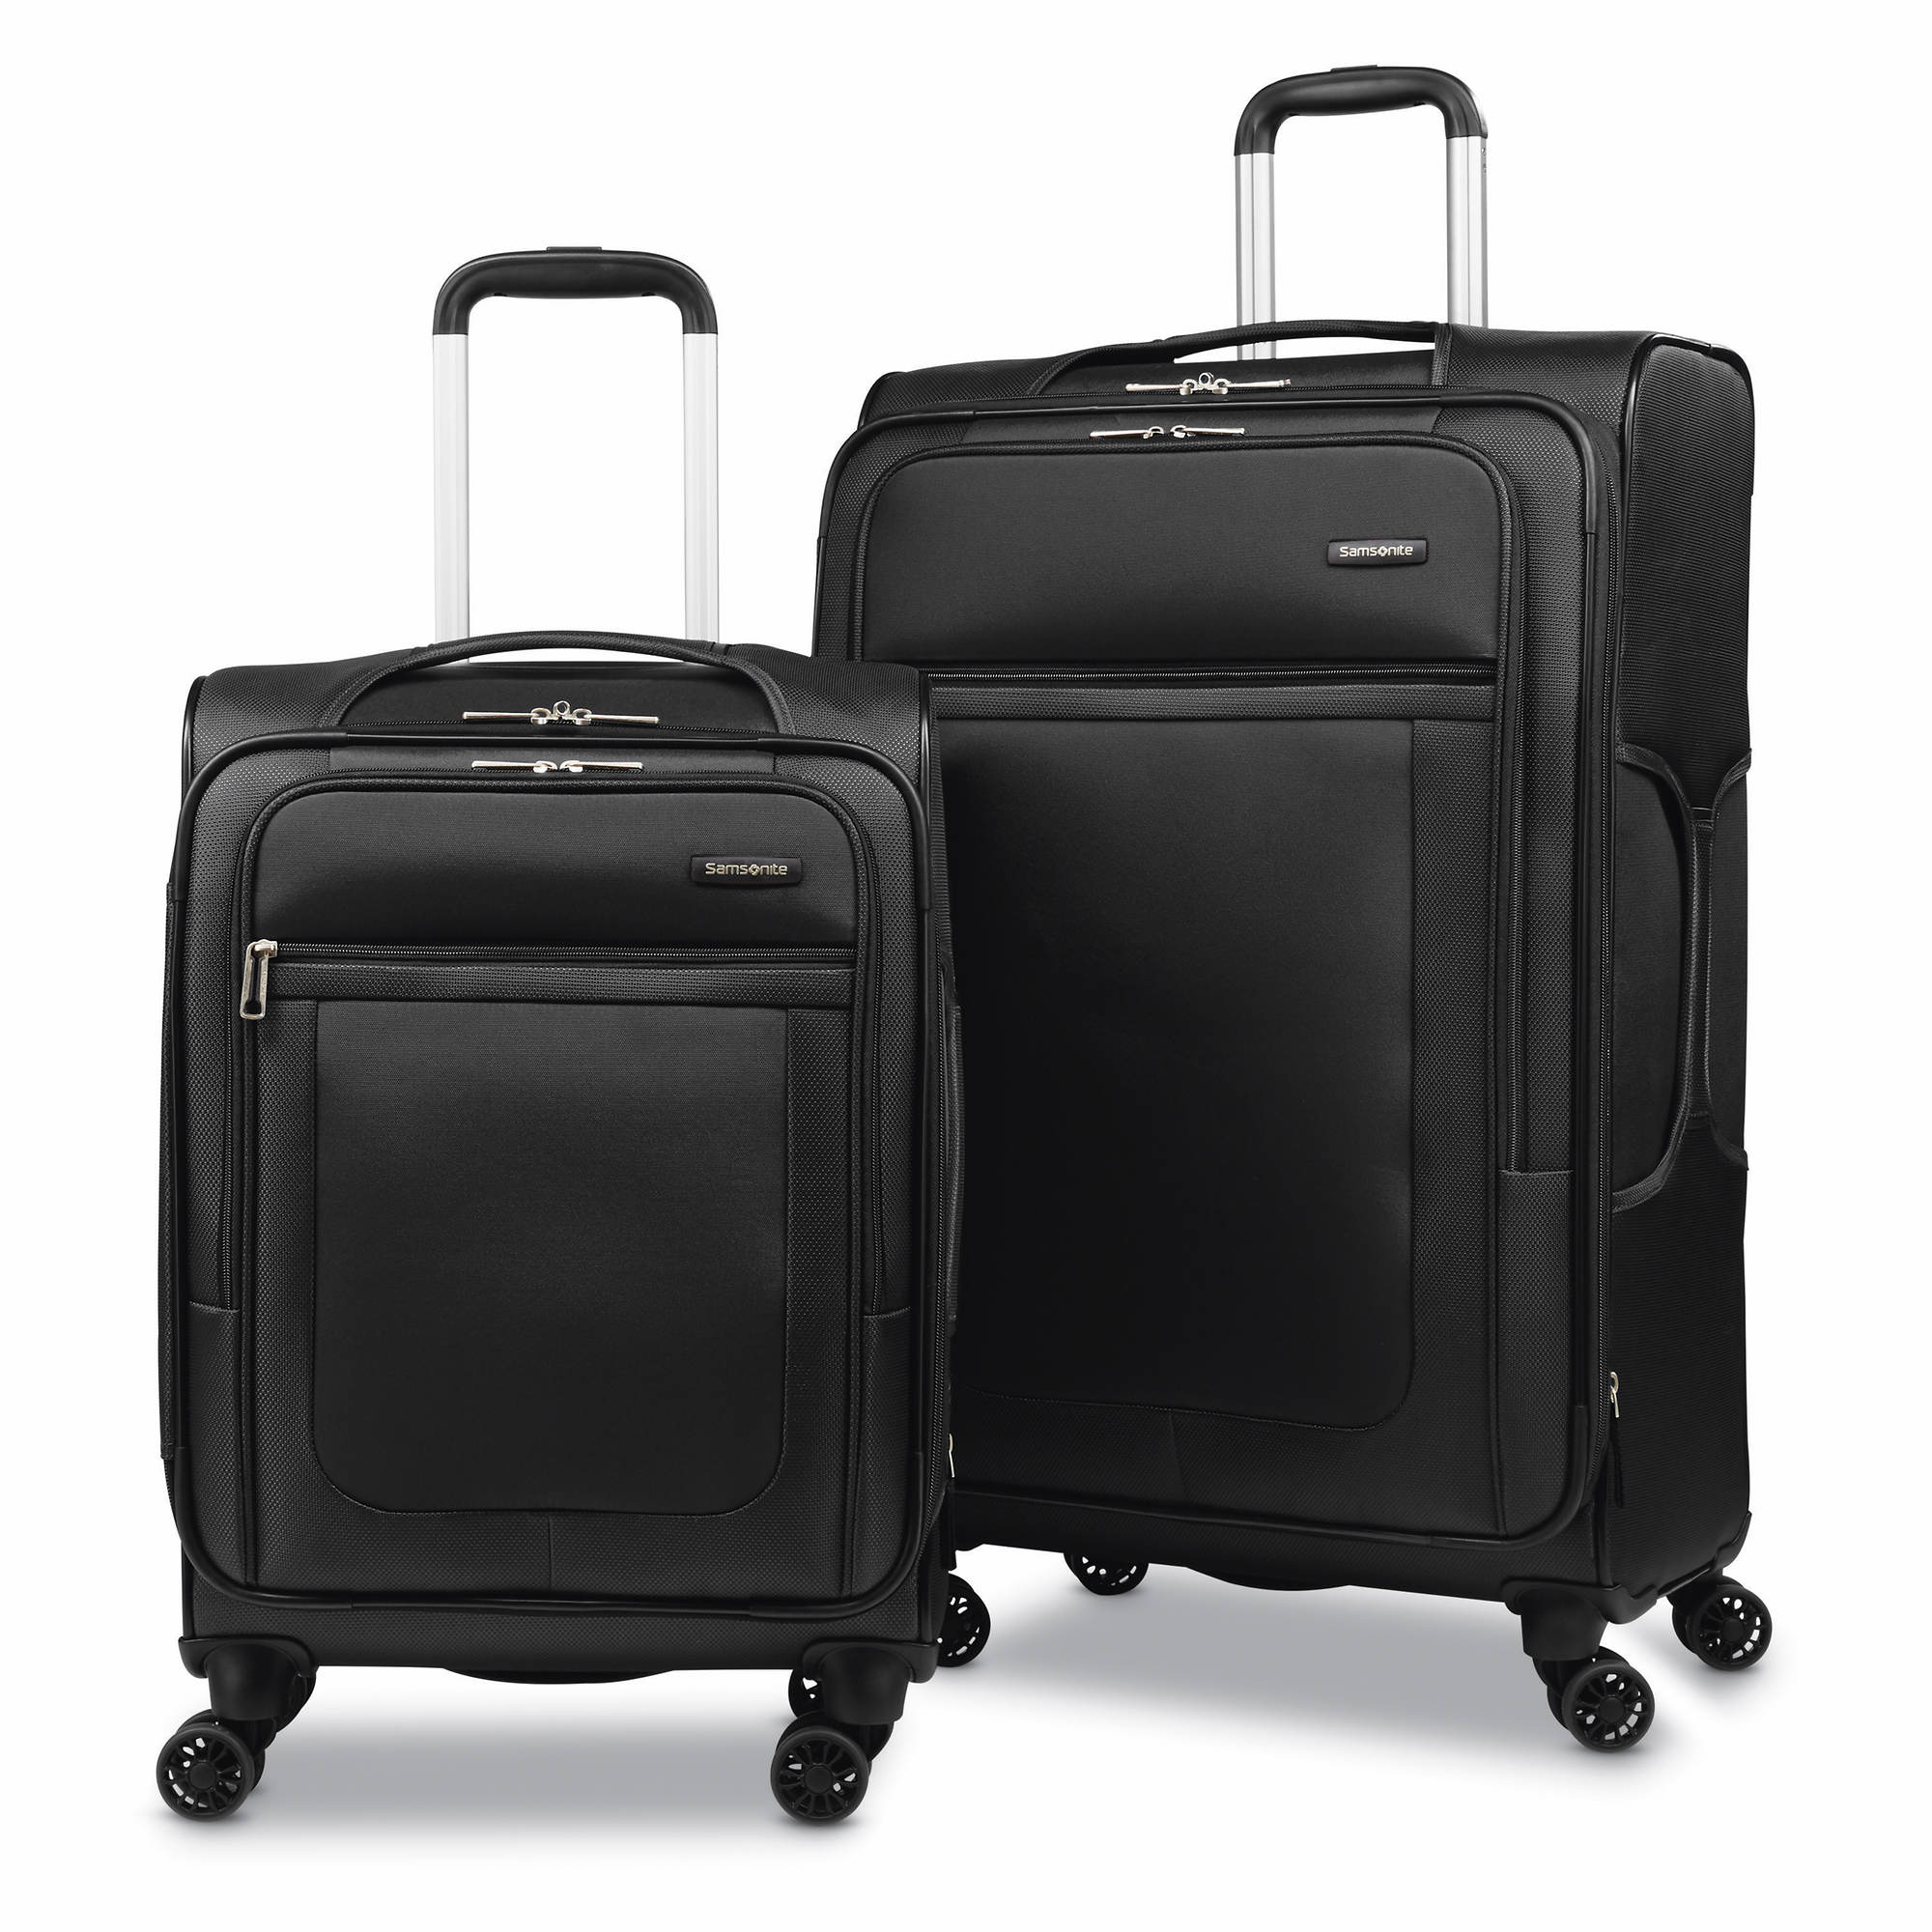 Carry-On Luggage and Suitcases - BJ's Wholesale Club